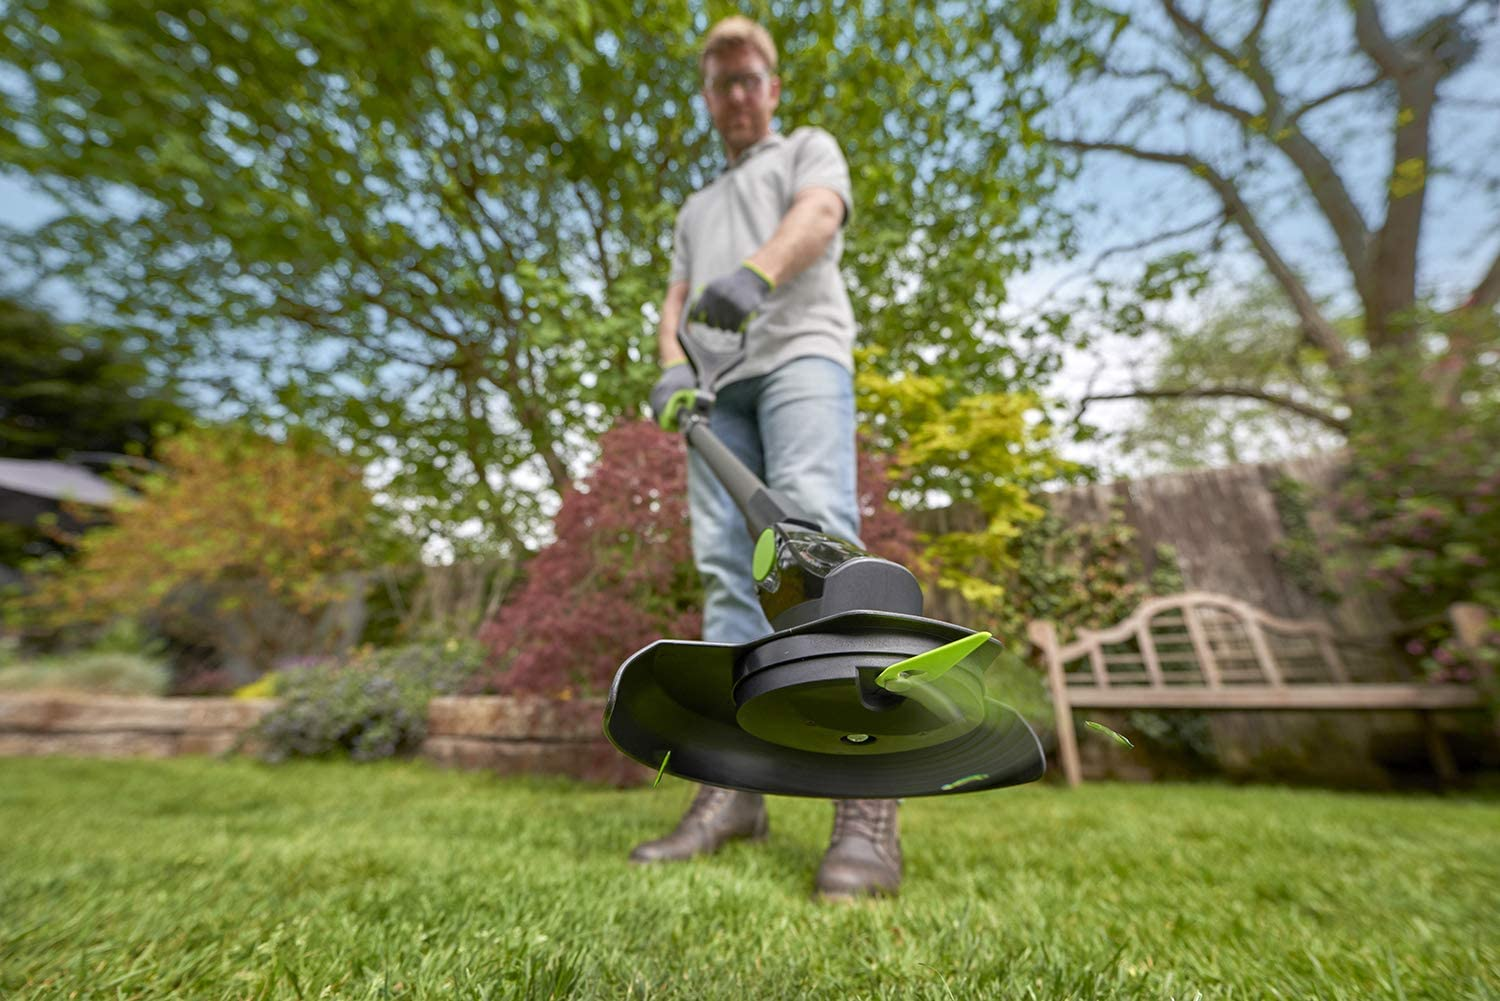 Gtech Cordless Grass Trimmer GT 4.0 Review